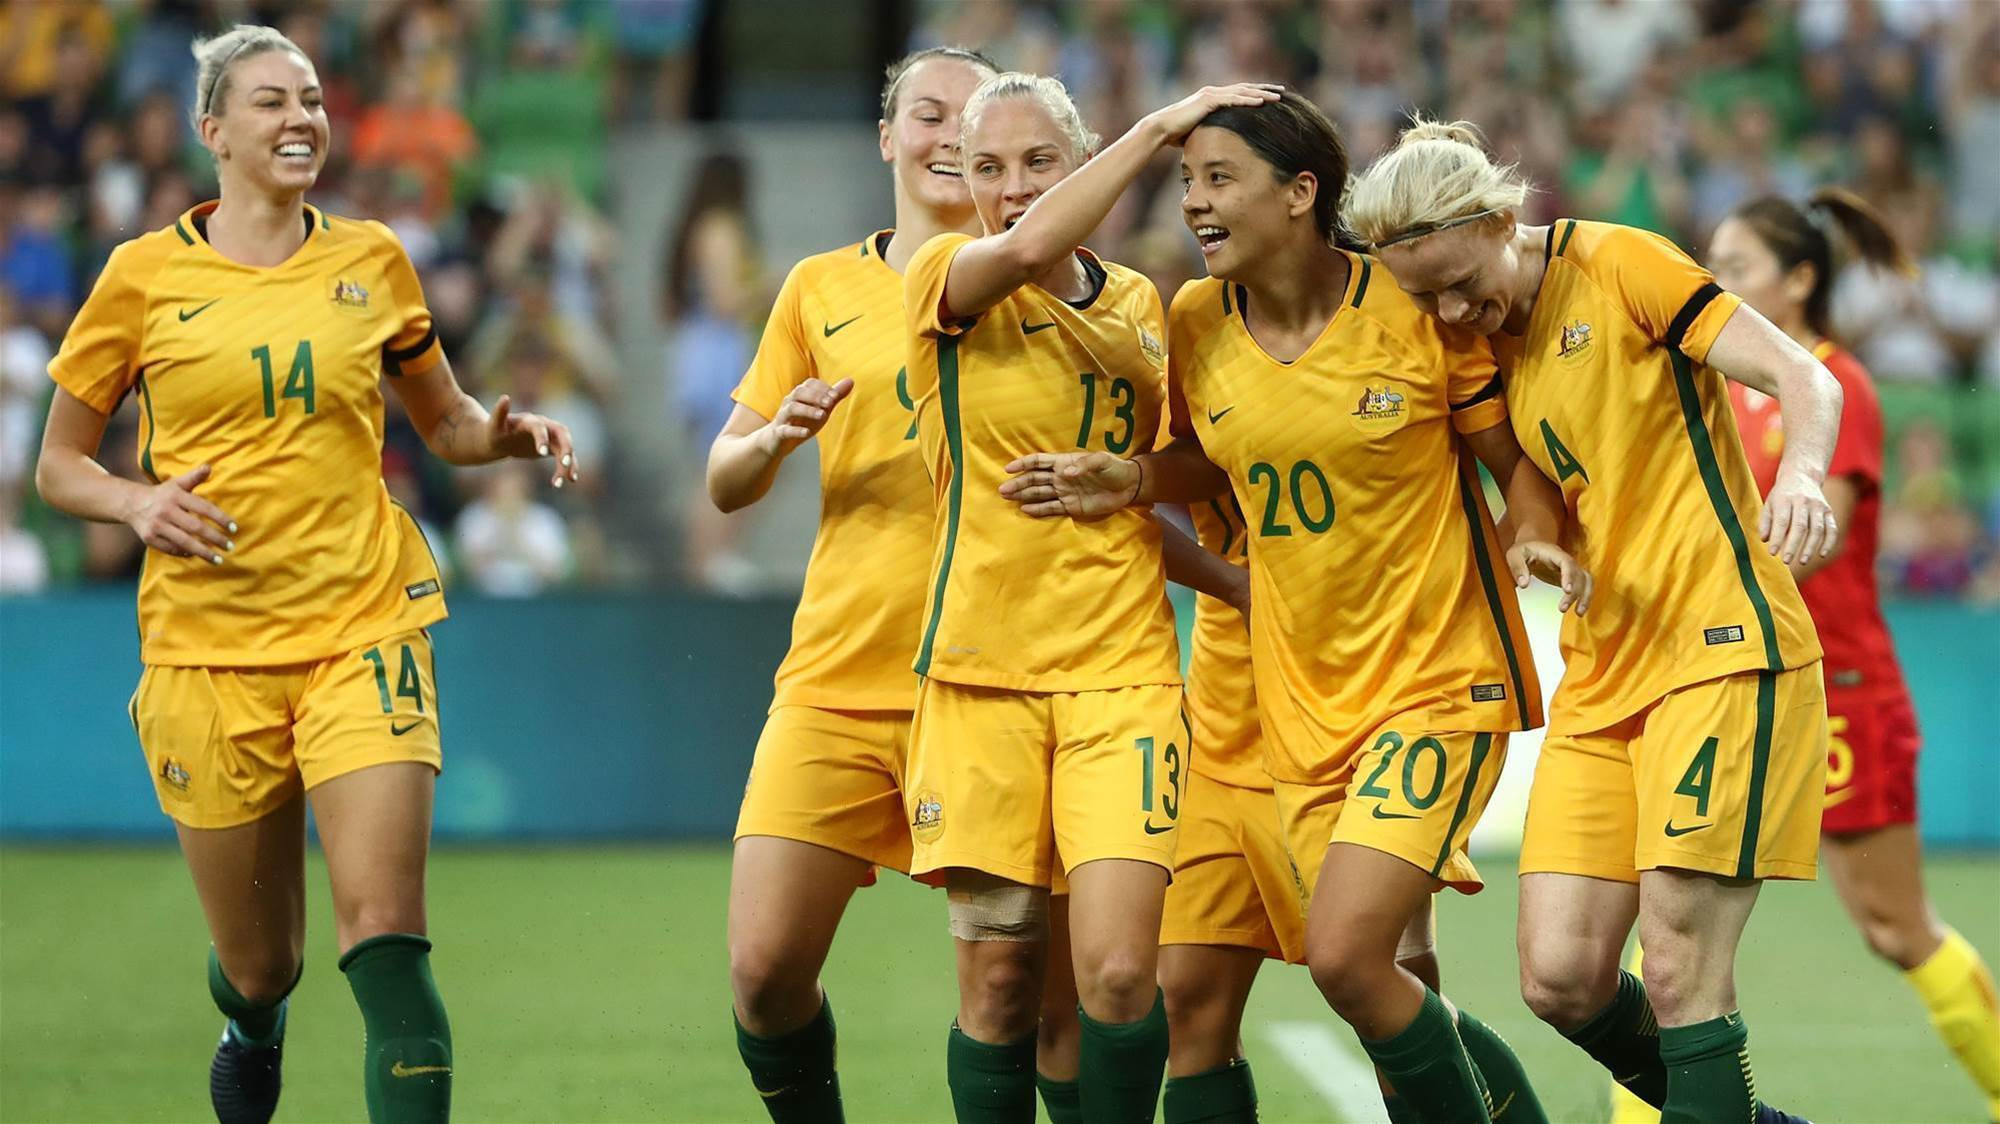 Matildas: This is the golden generation